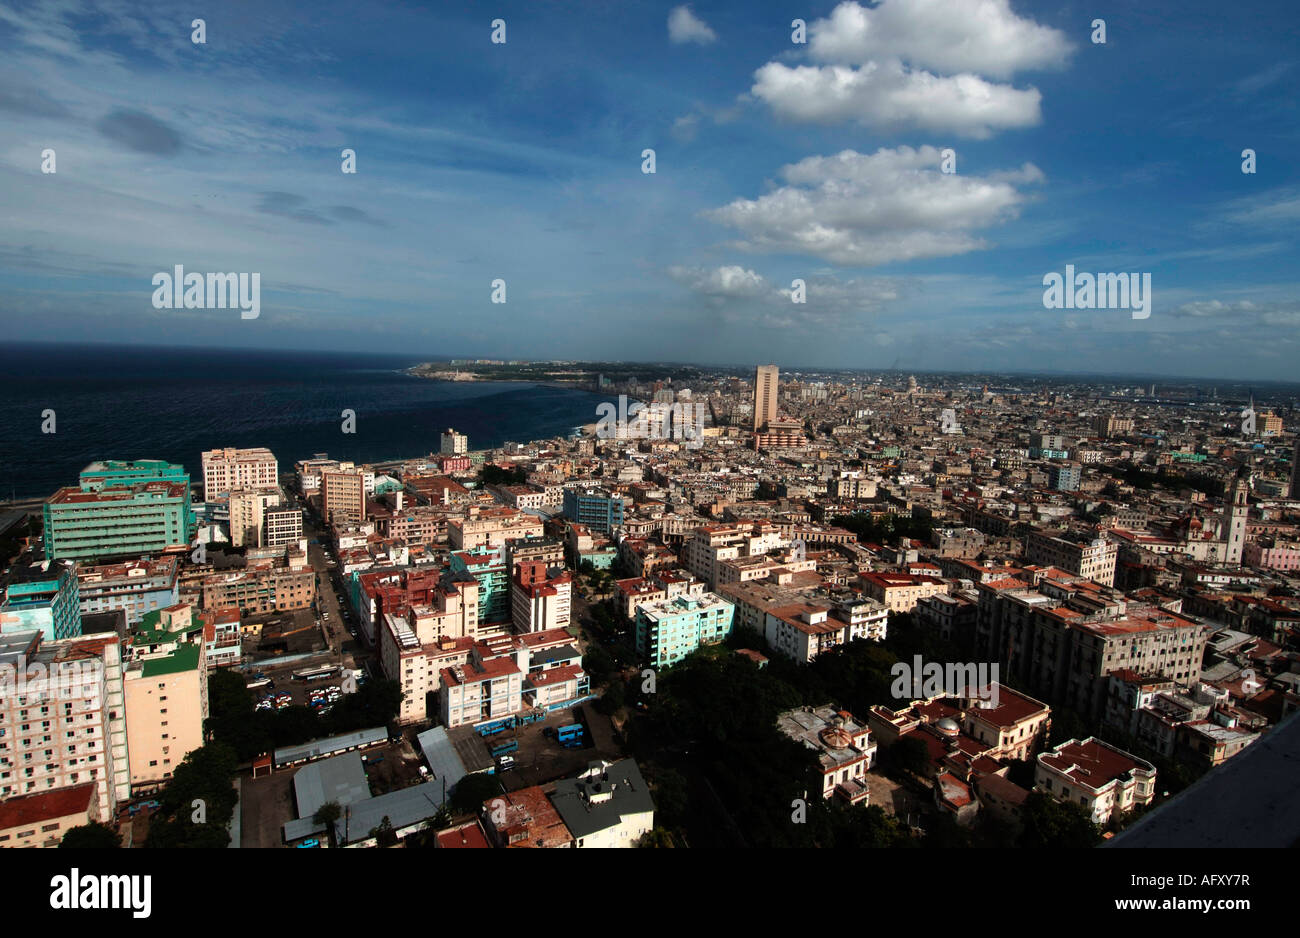 Cuba aerial view of Vedado and centro Havana from the hotel Tryp Habana Libre Stock Photo